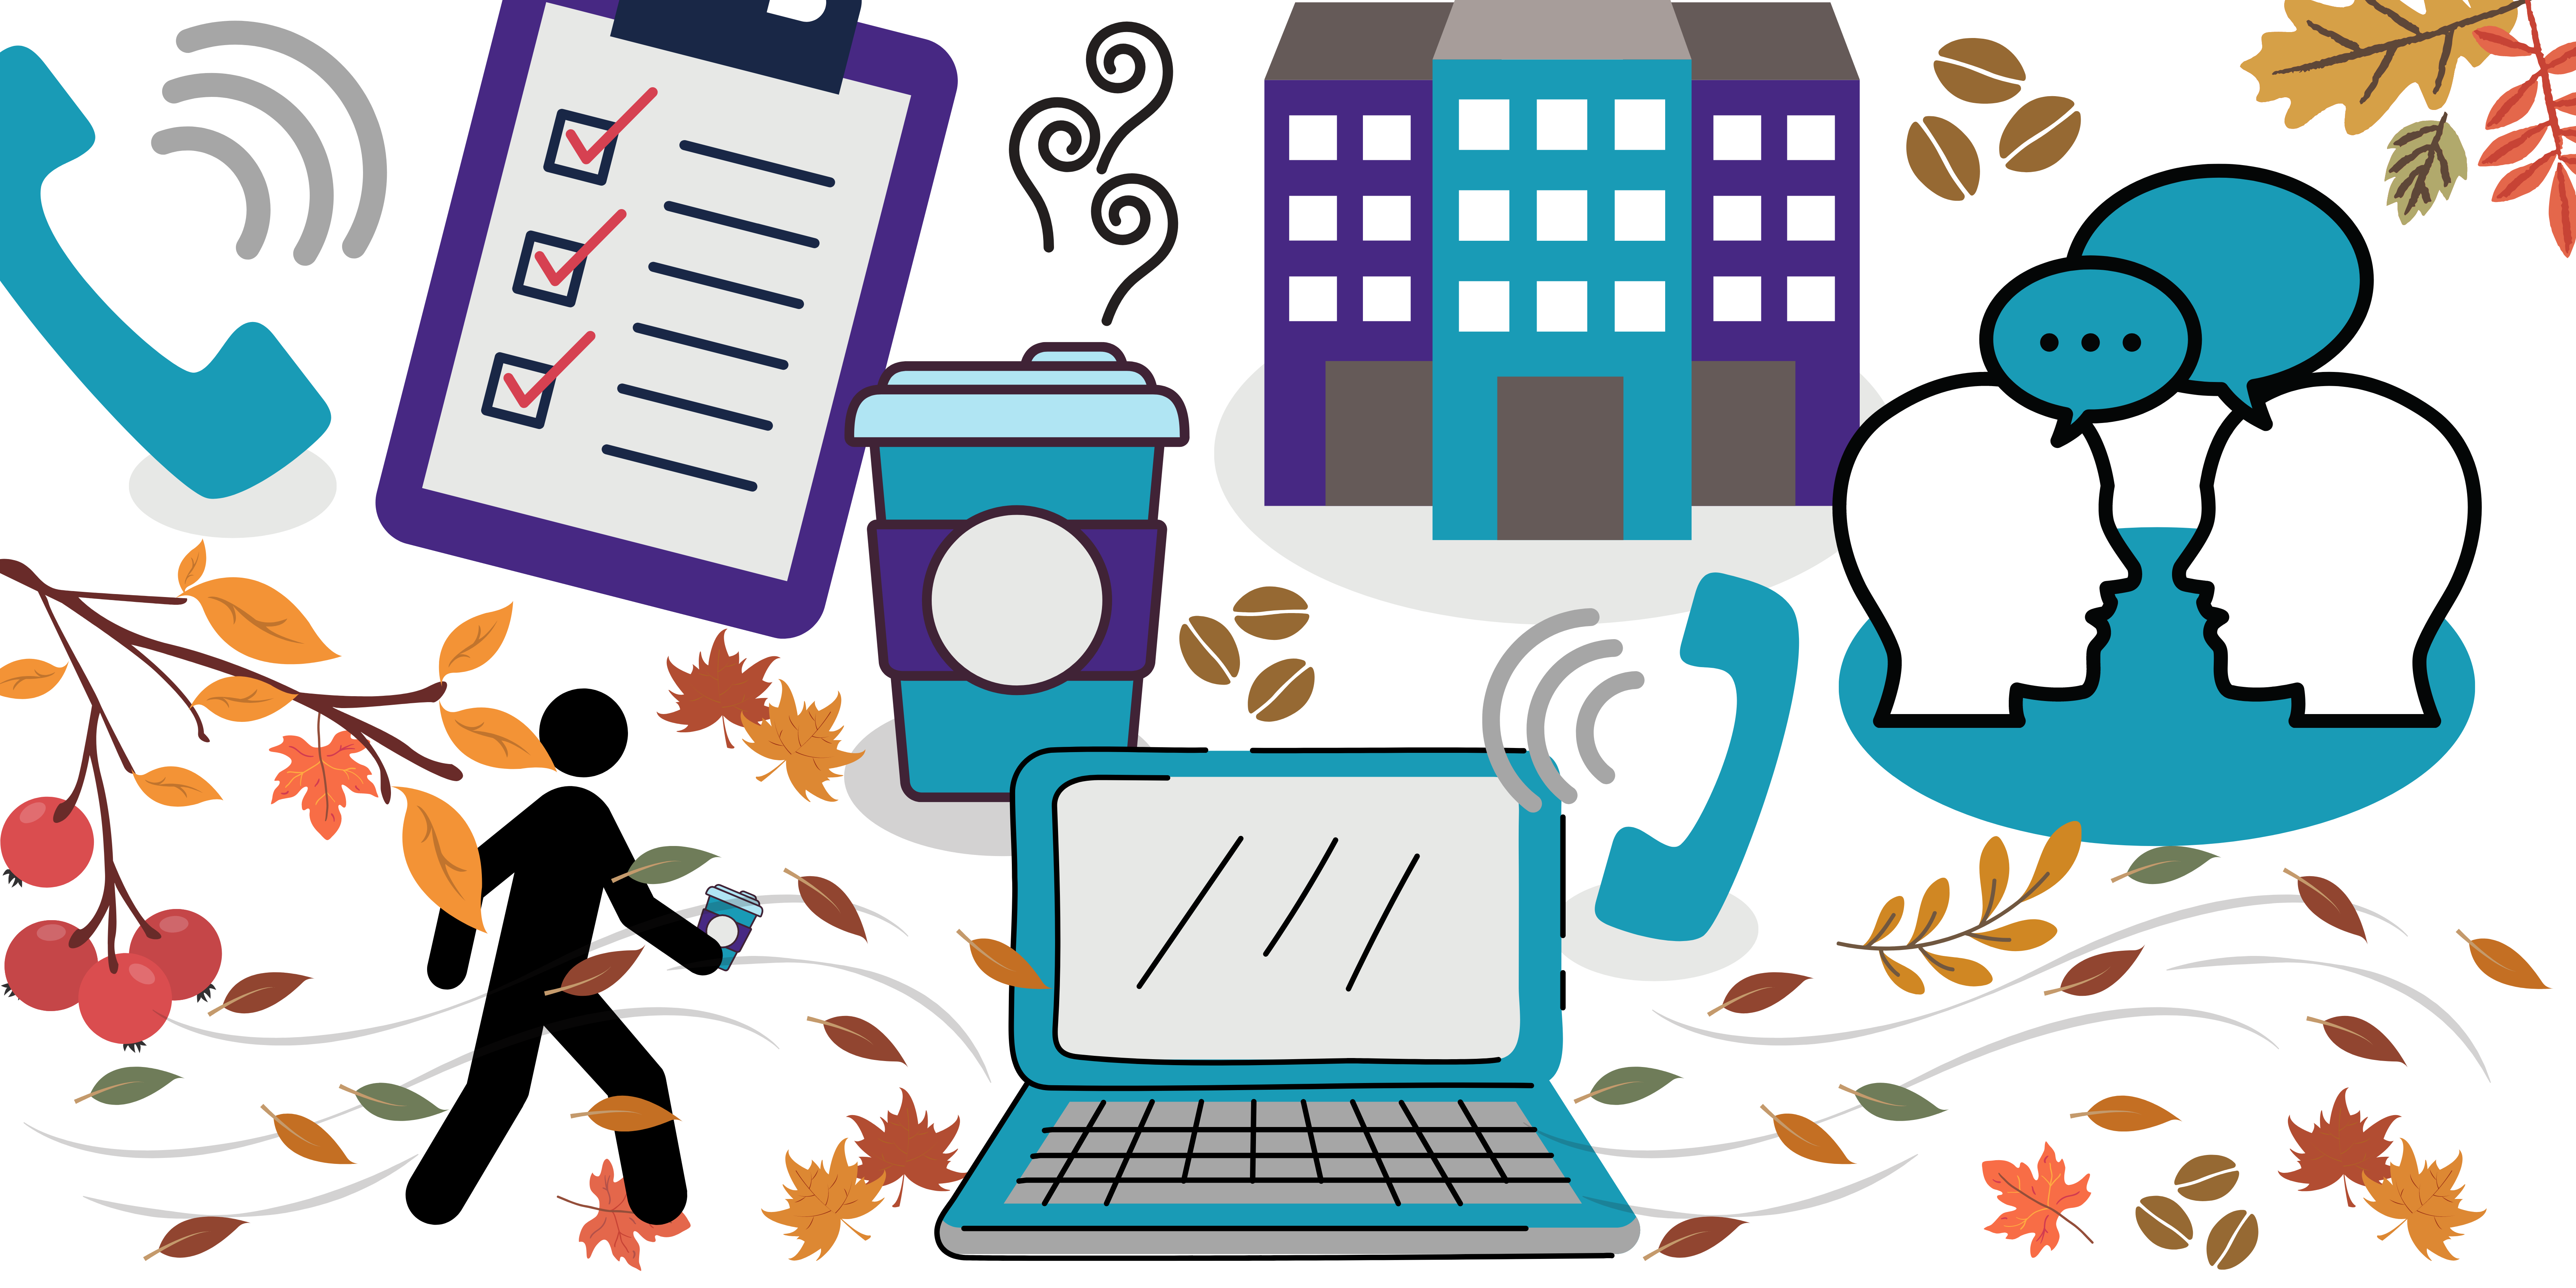 Infographic of James' day in the life, featuring coffee cups, autumn walks, phone calls, laptops and more coffee